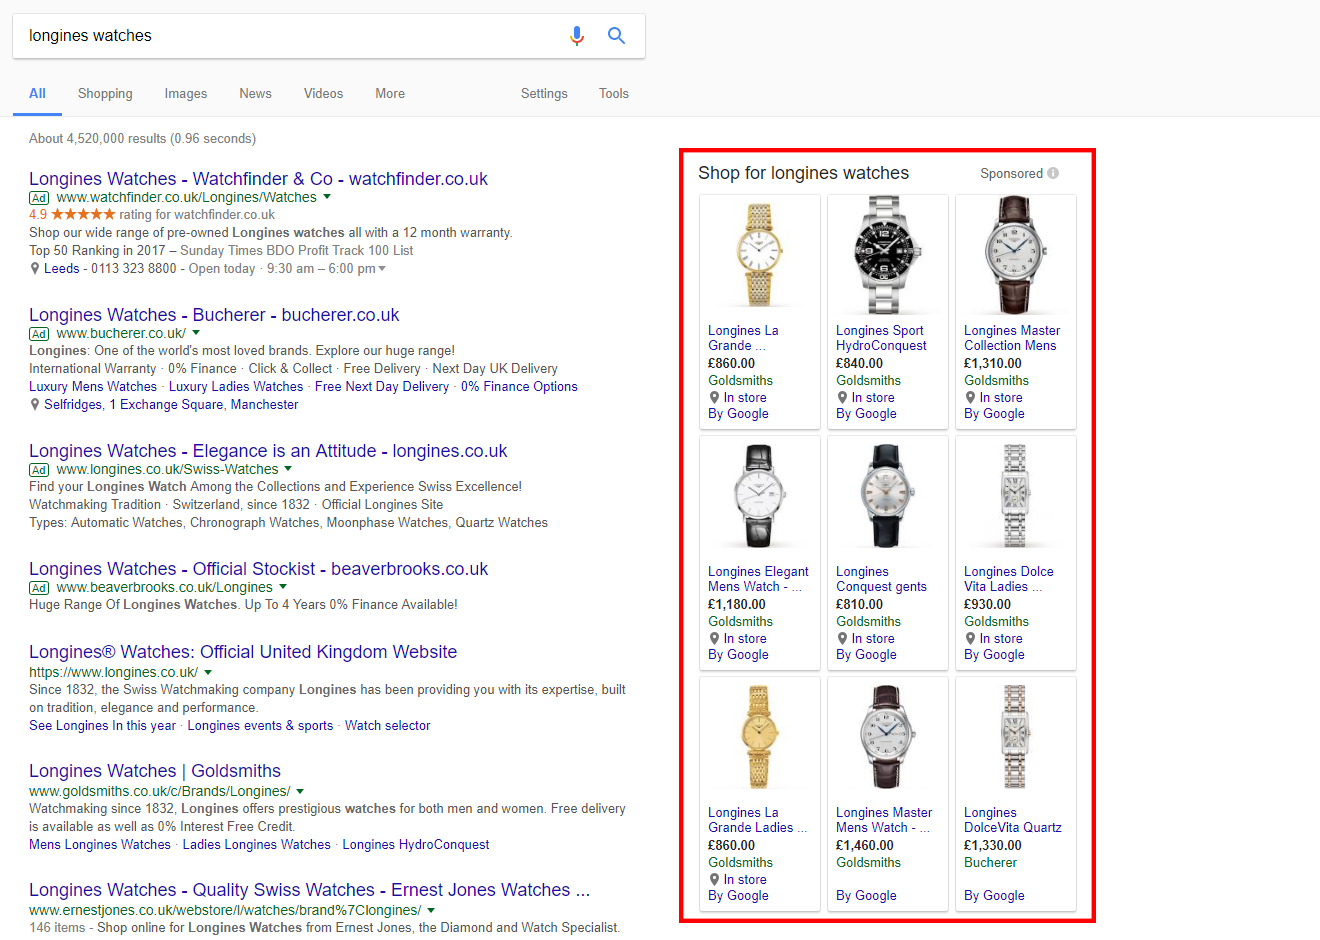 Google shopping on search